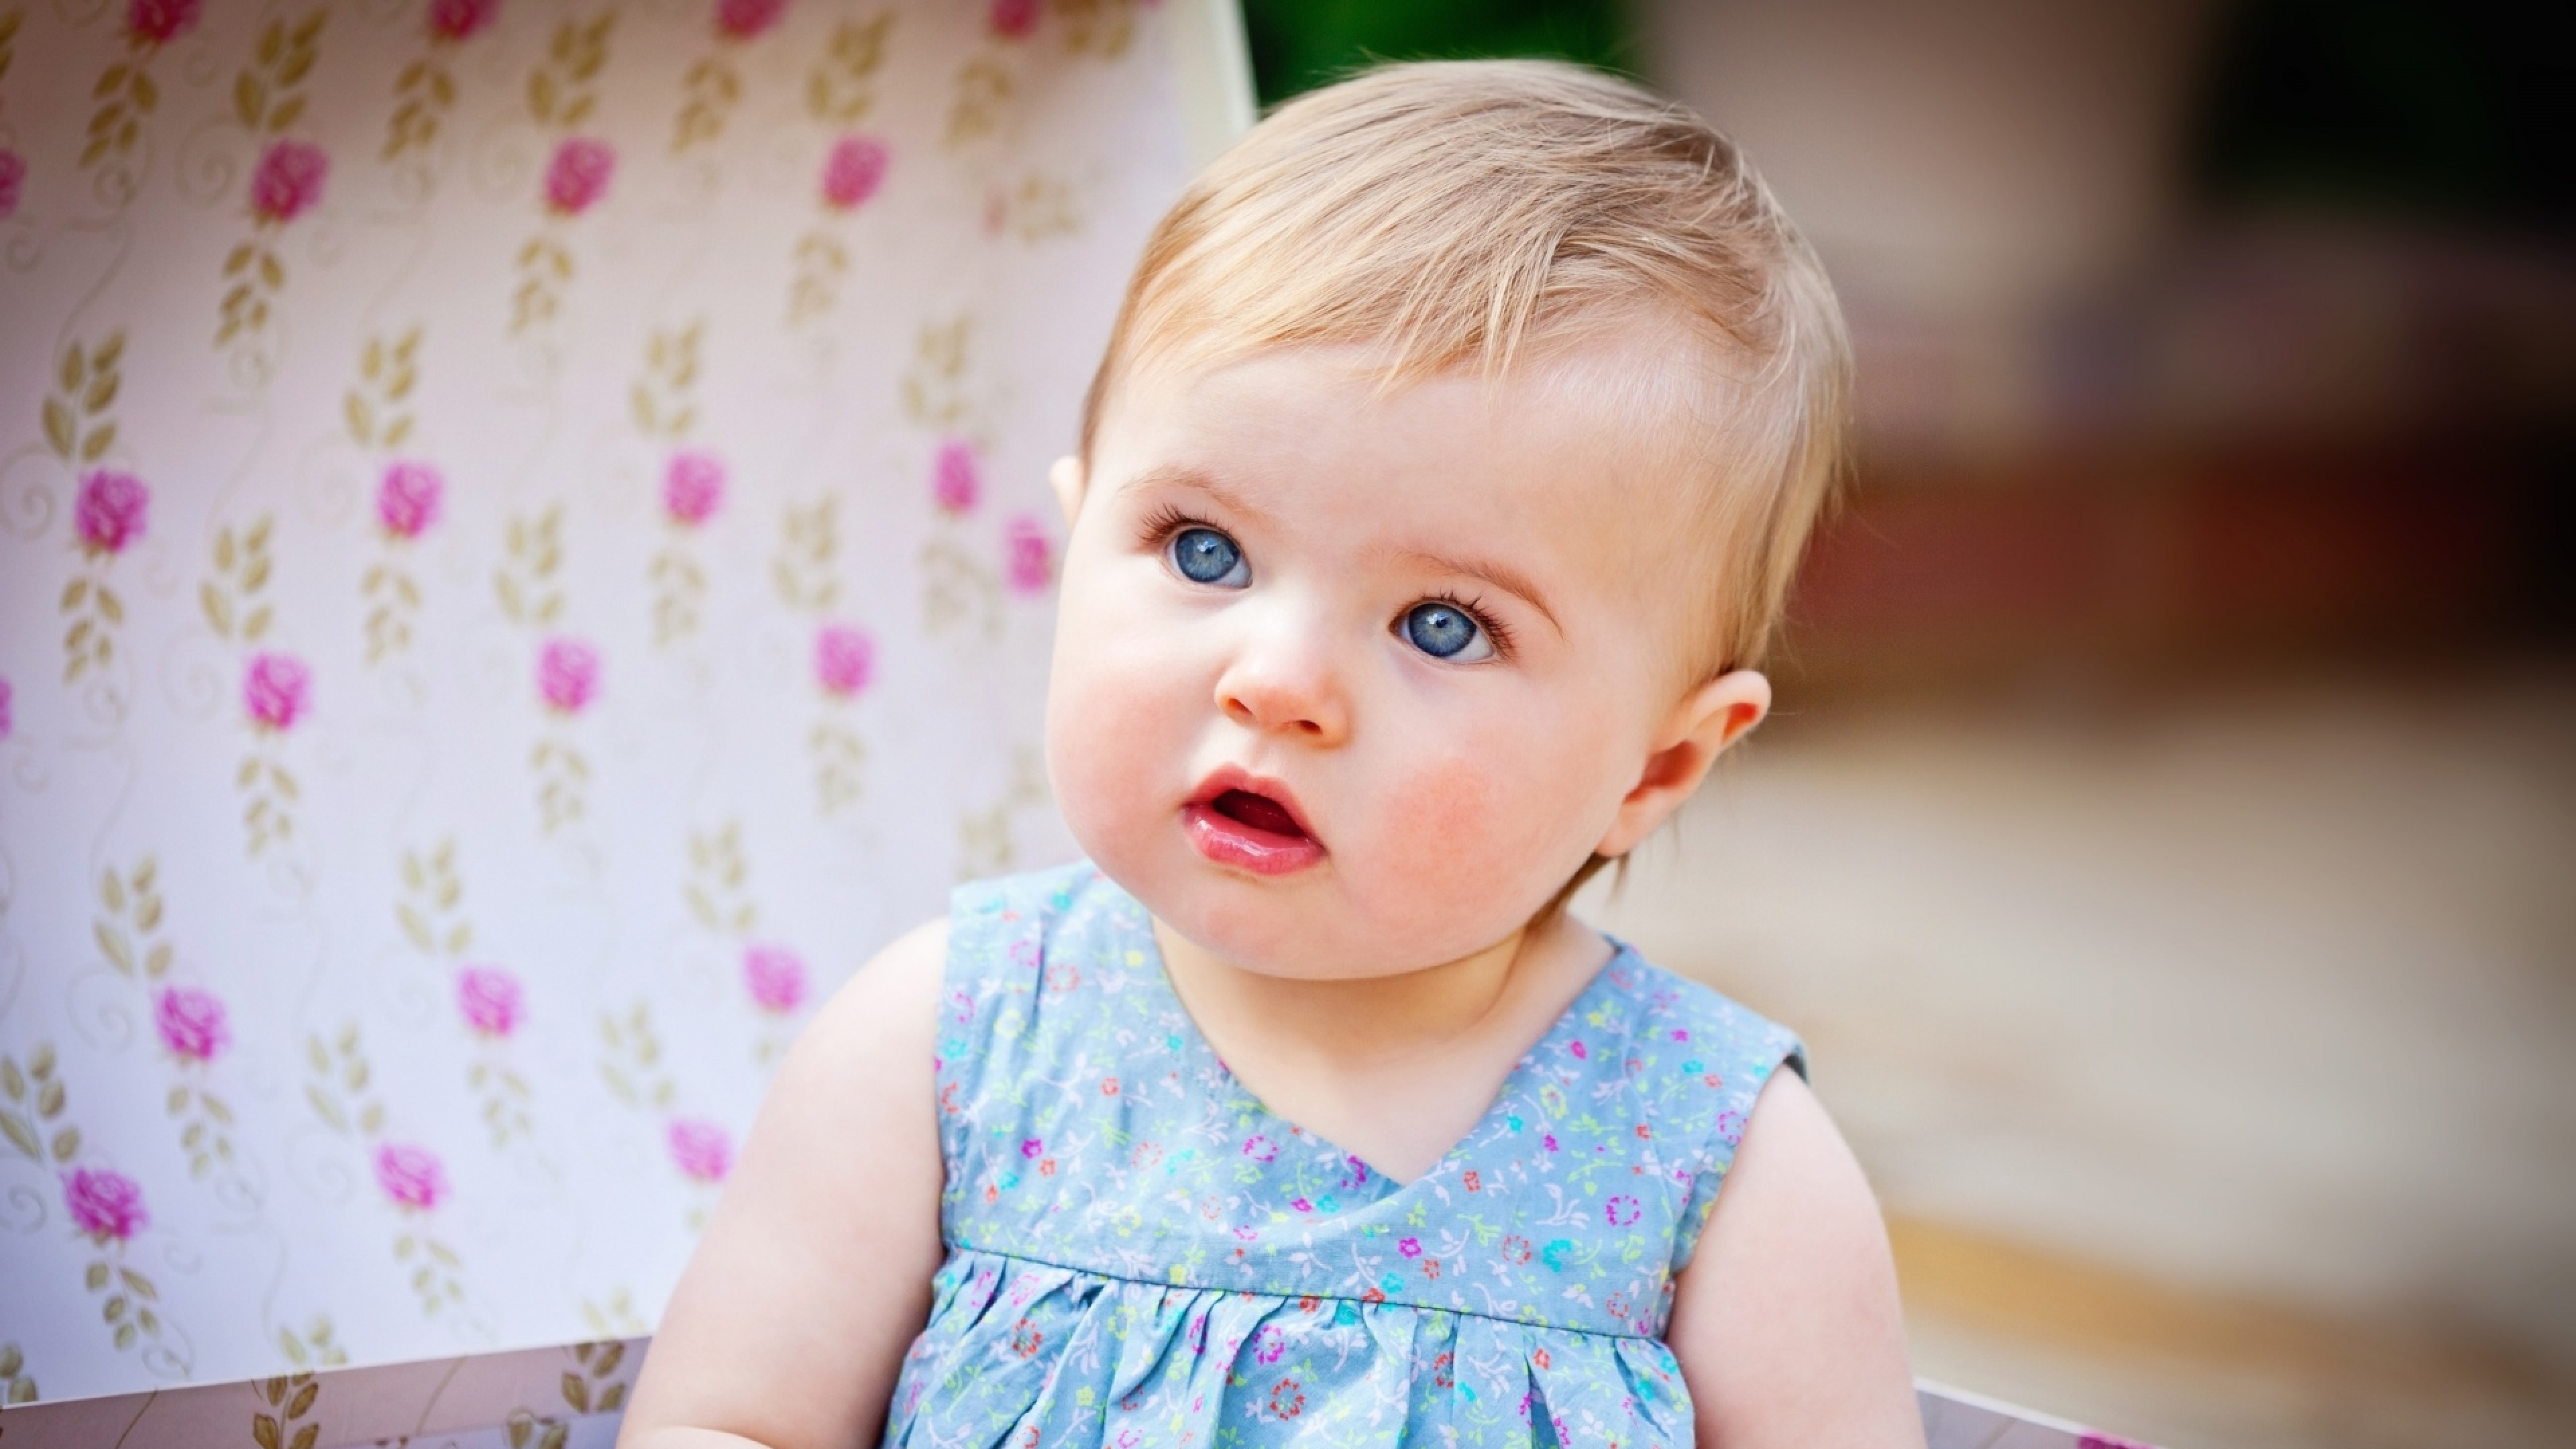 1000+ ideas about Cute Baby Girl Wallpaper on Pinterest | Baby